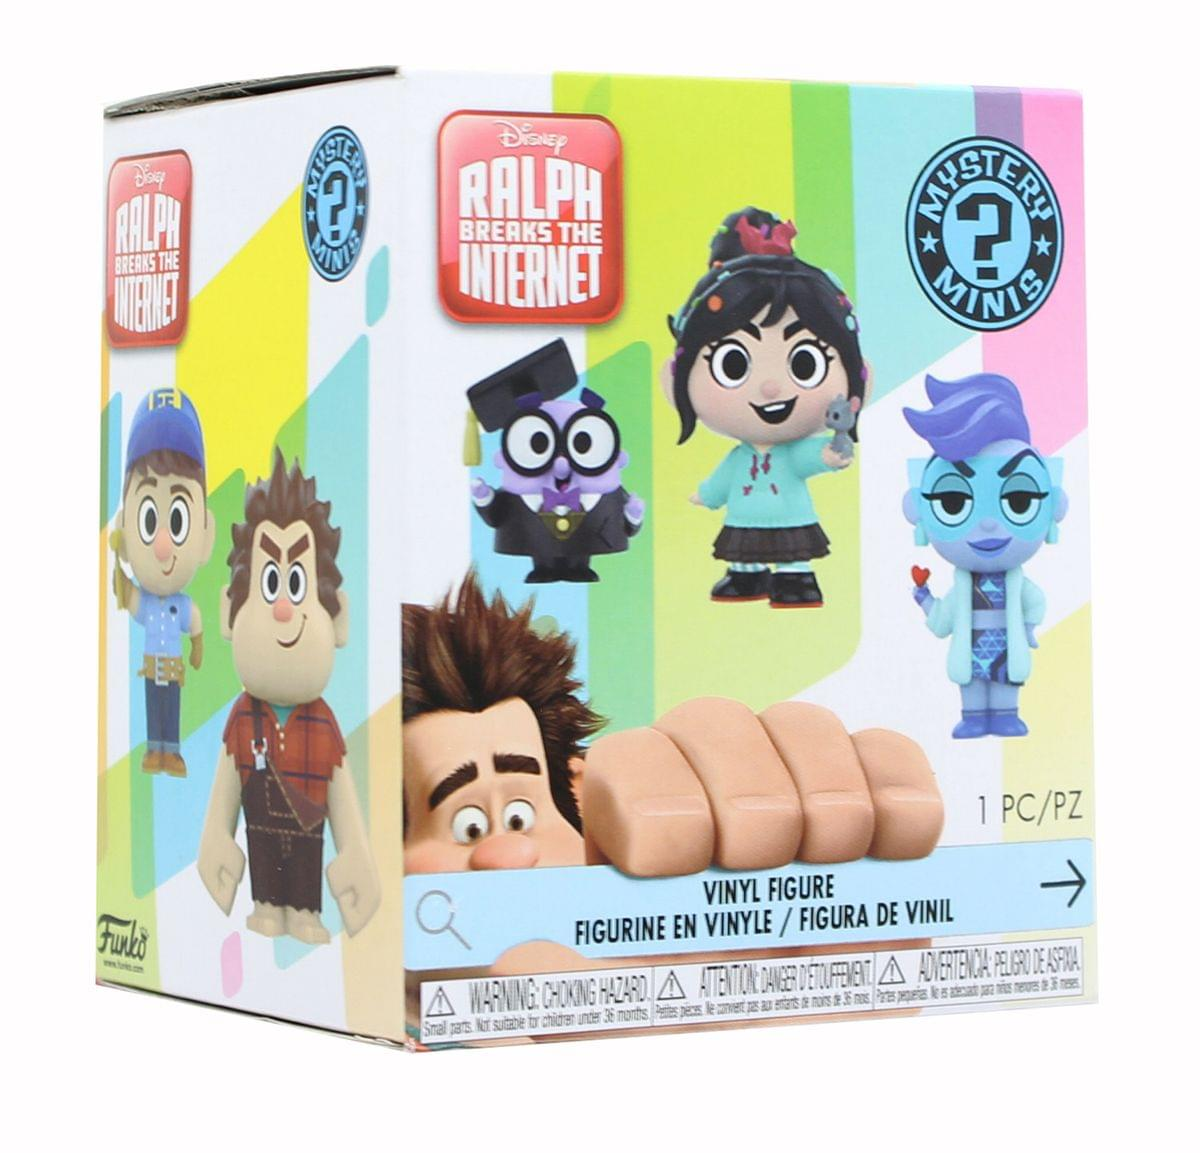 Wreck-It Ralph 2 Funko Blind Boxed Mystery Minis - One Random